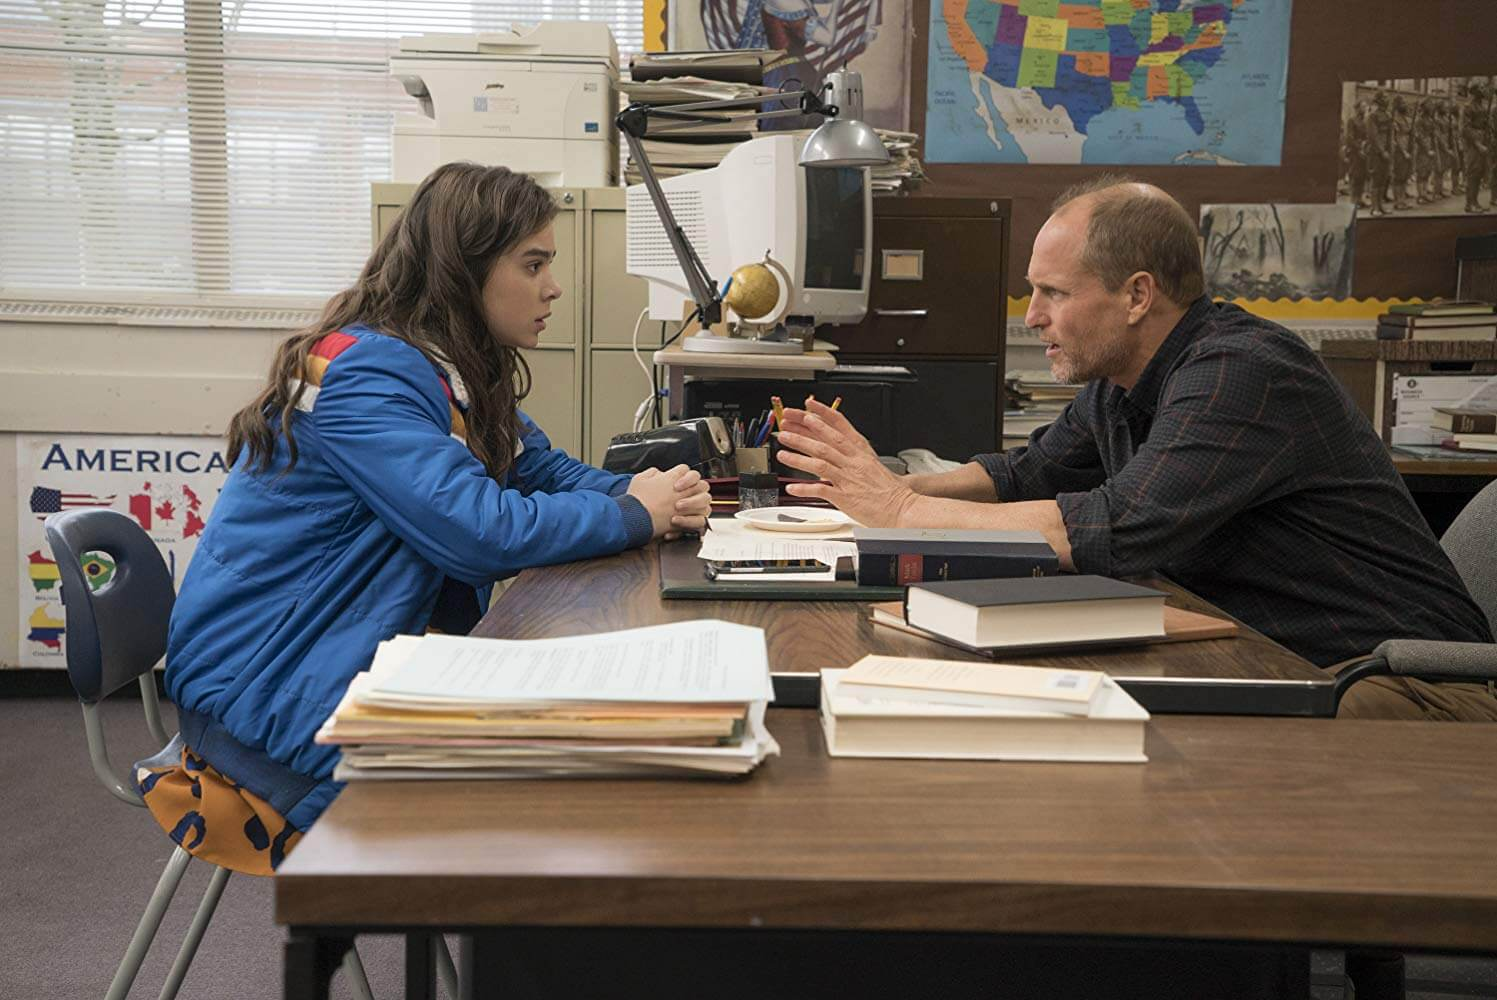 Nadine and Mr. Bruner in The Edge of Seventeen